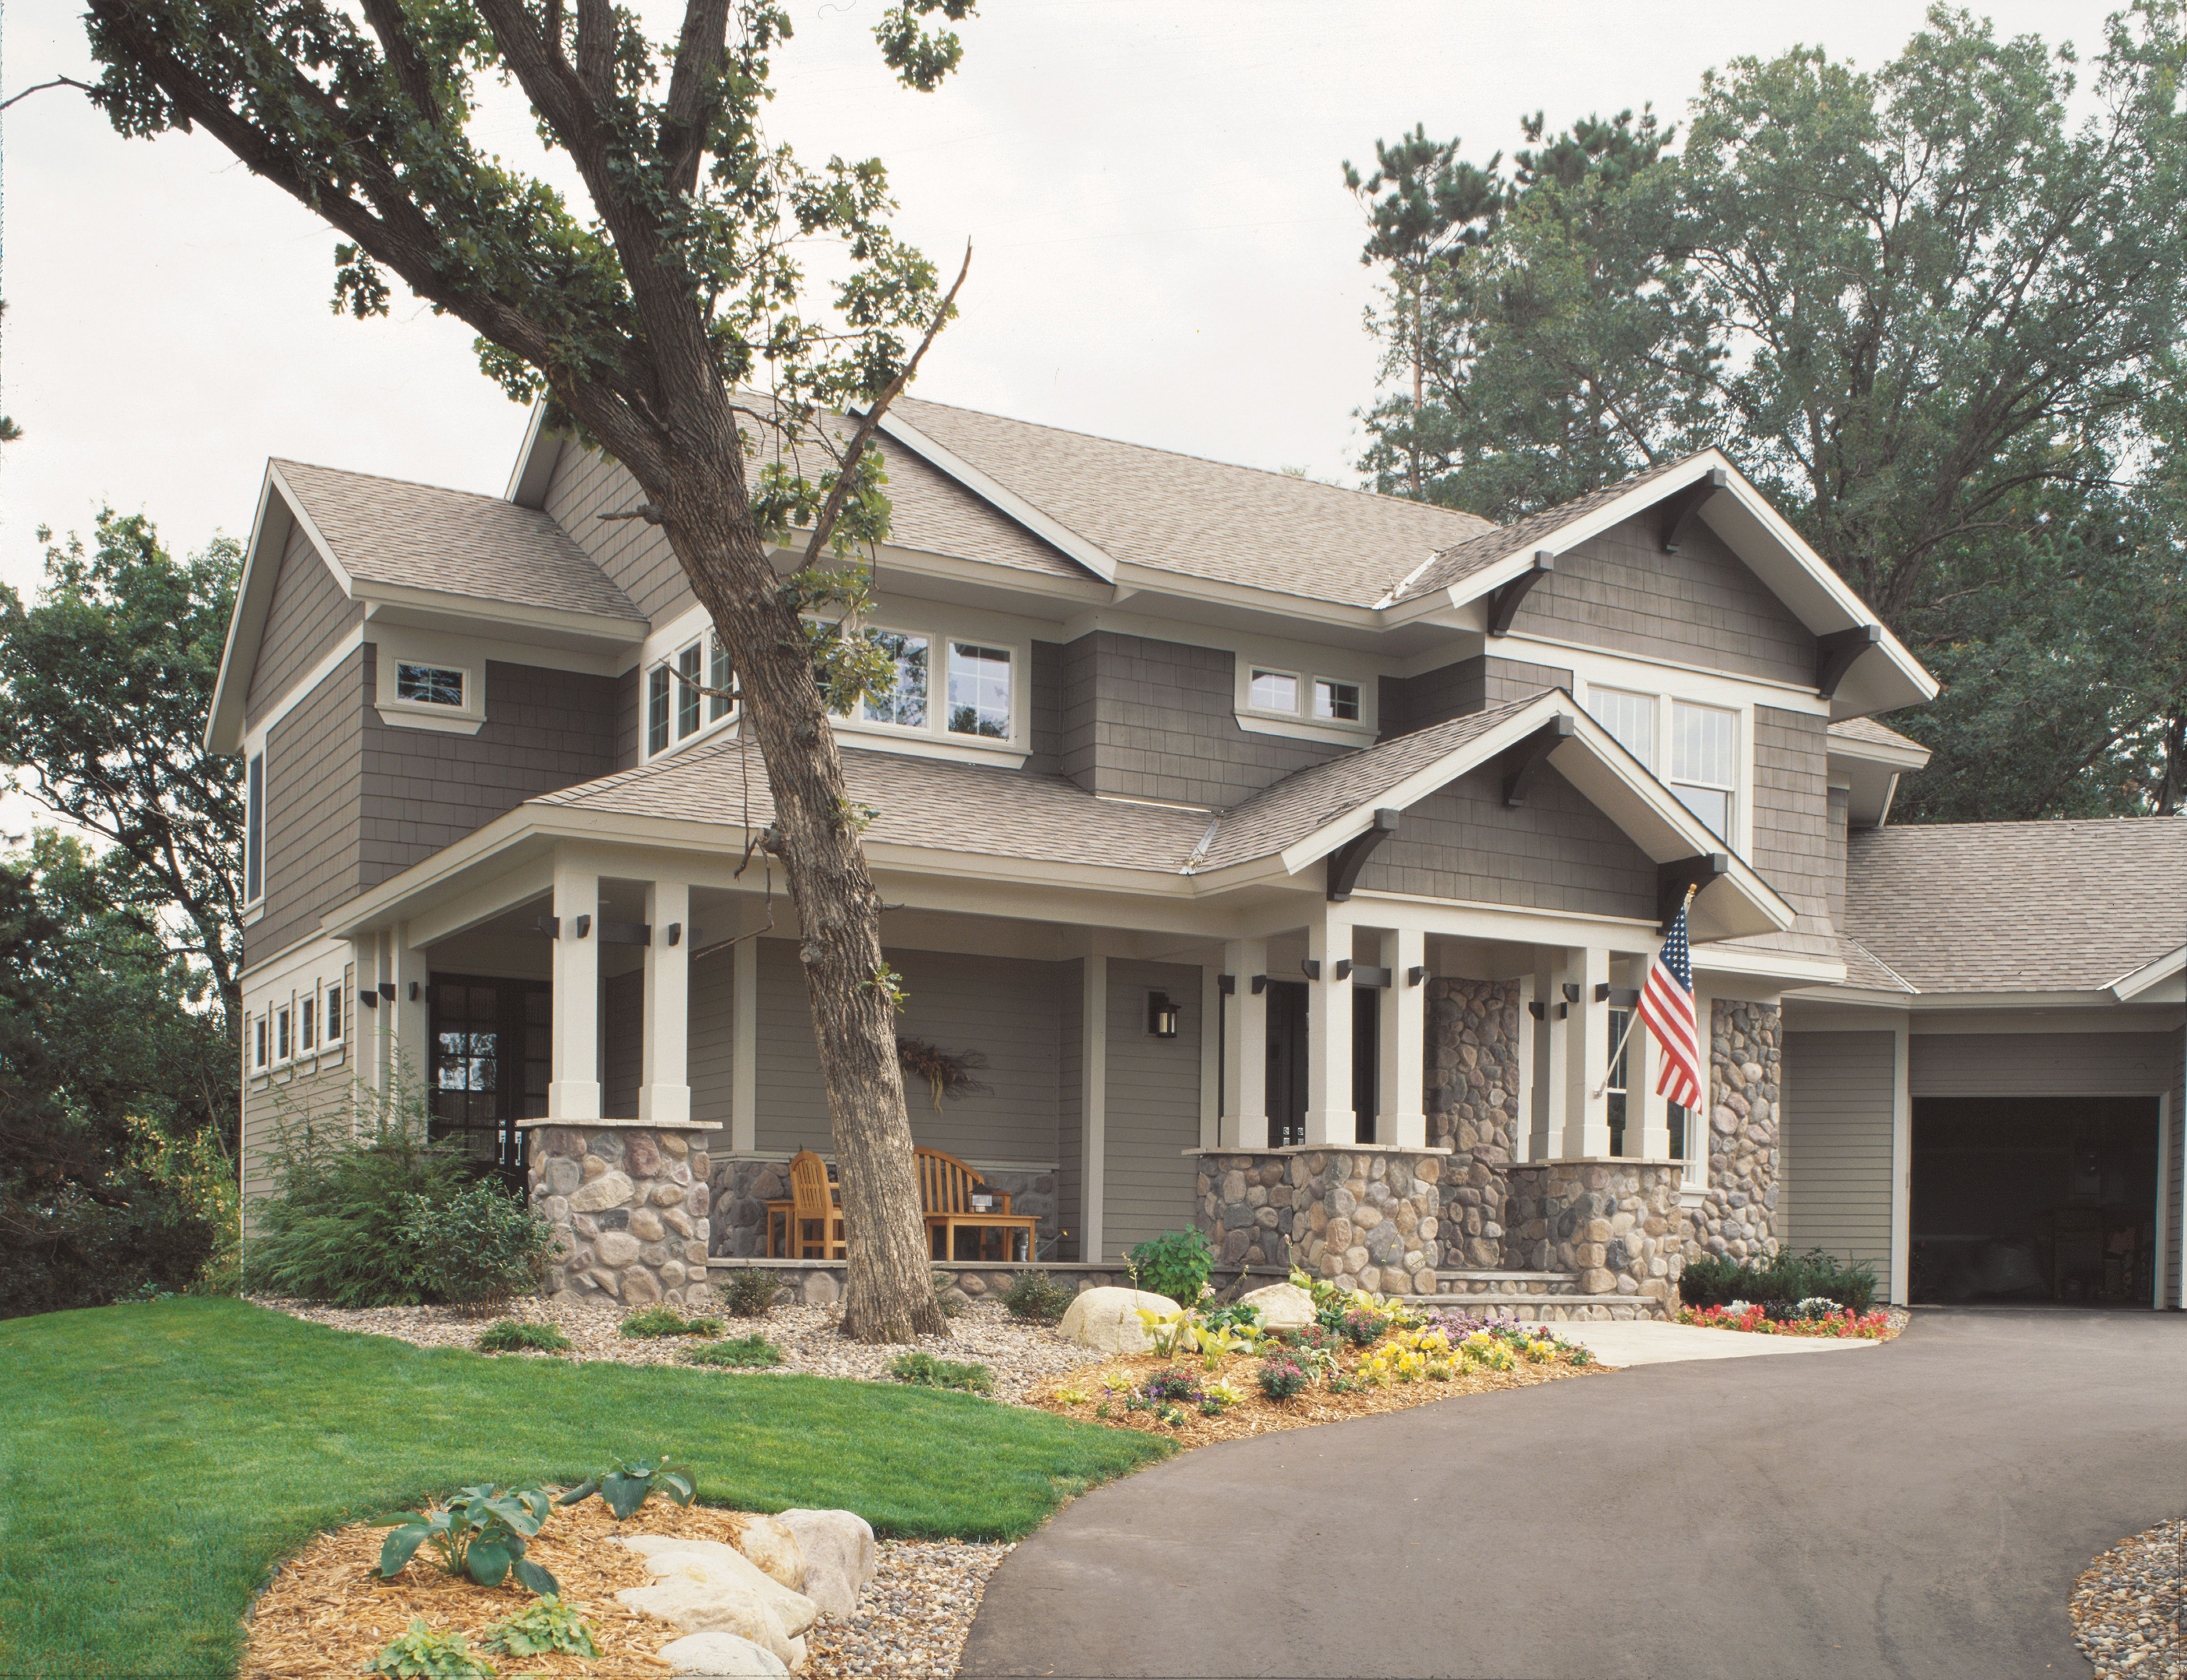 James Hardie Siding And Trim Comes In A Variety Of Custom